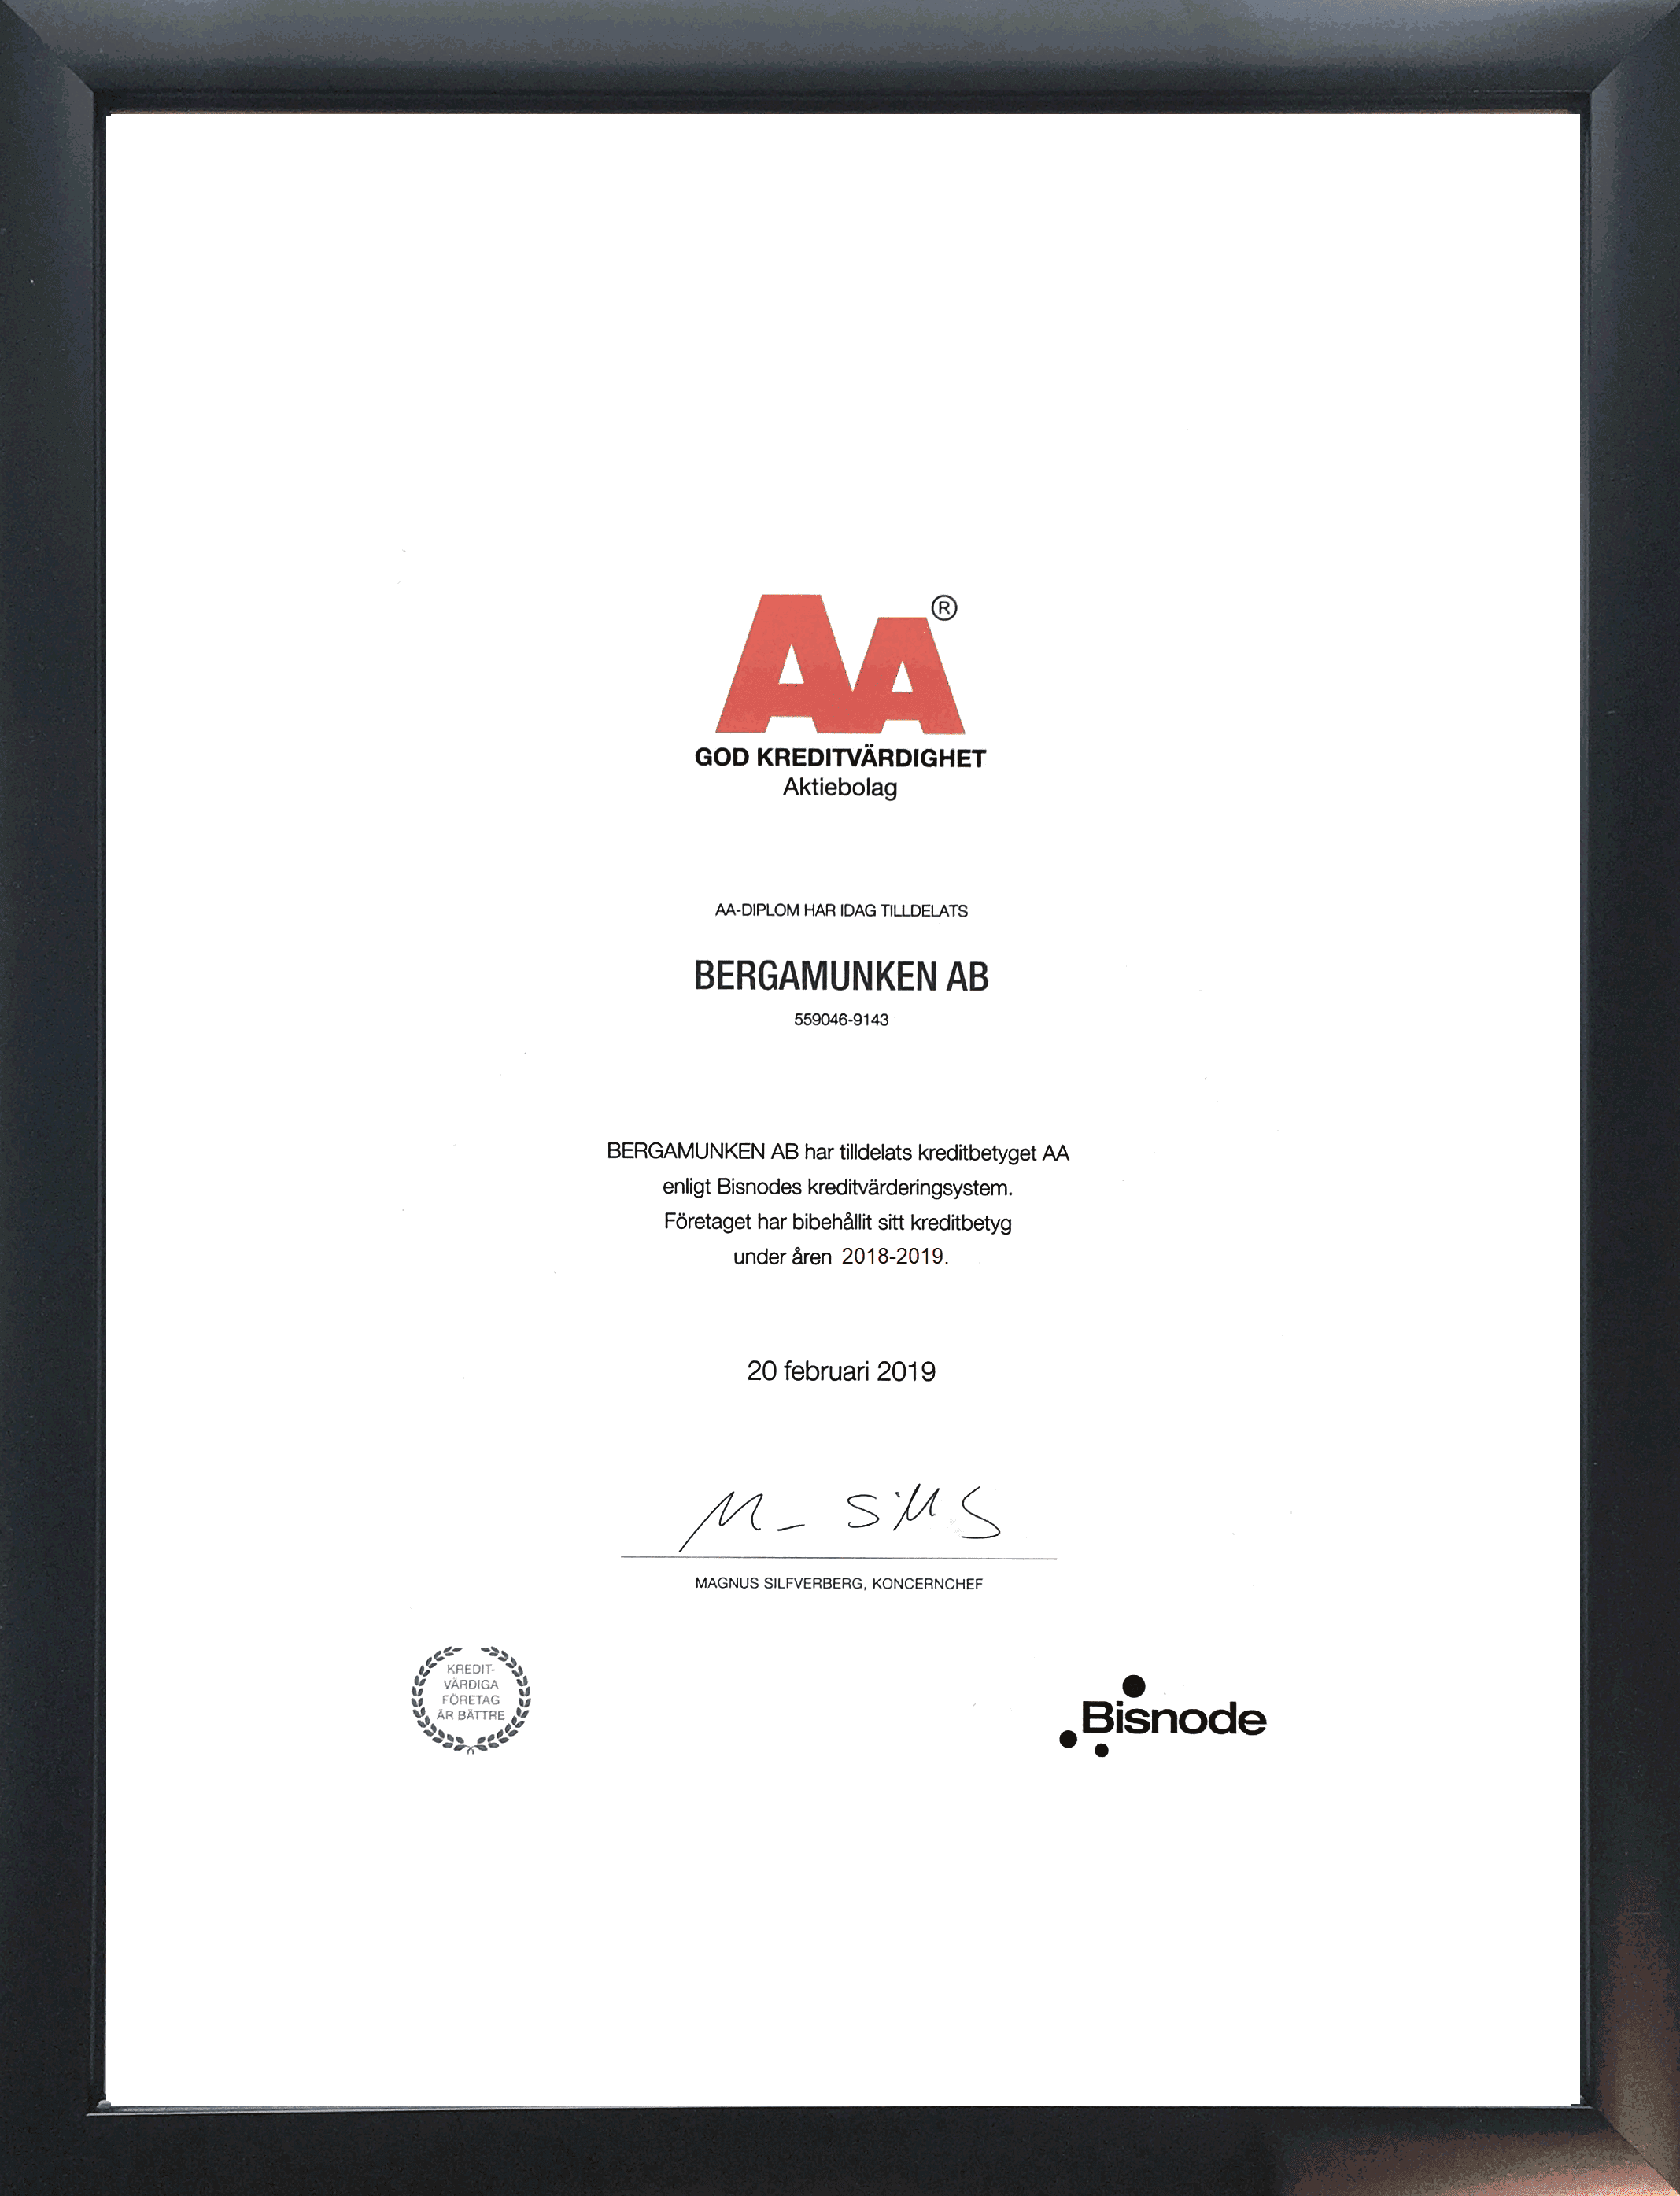 AA rating 2019 - Bergamunken AB